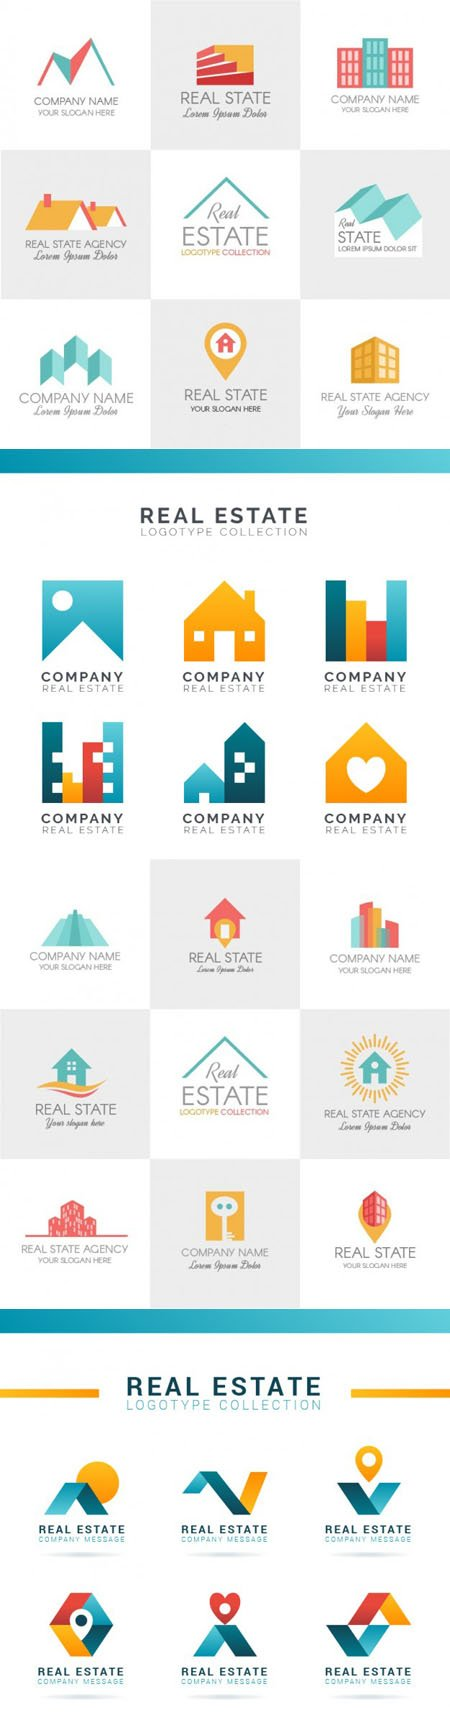 Colored Real Estate Logotypes in Vector